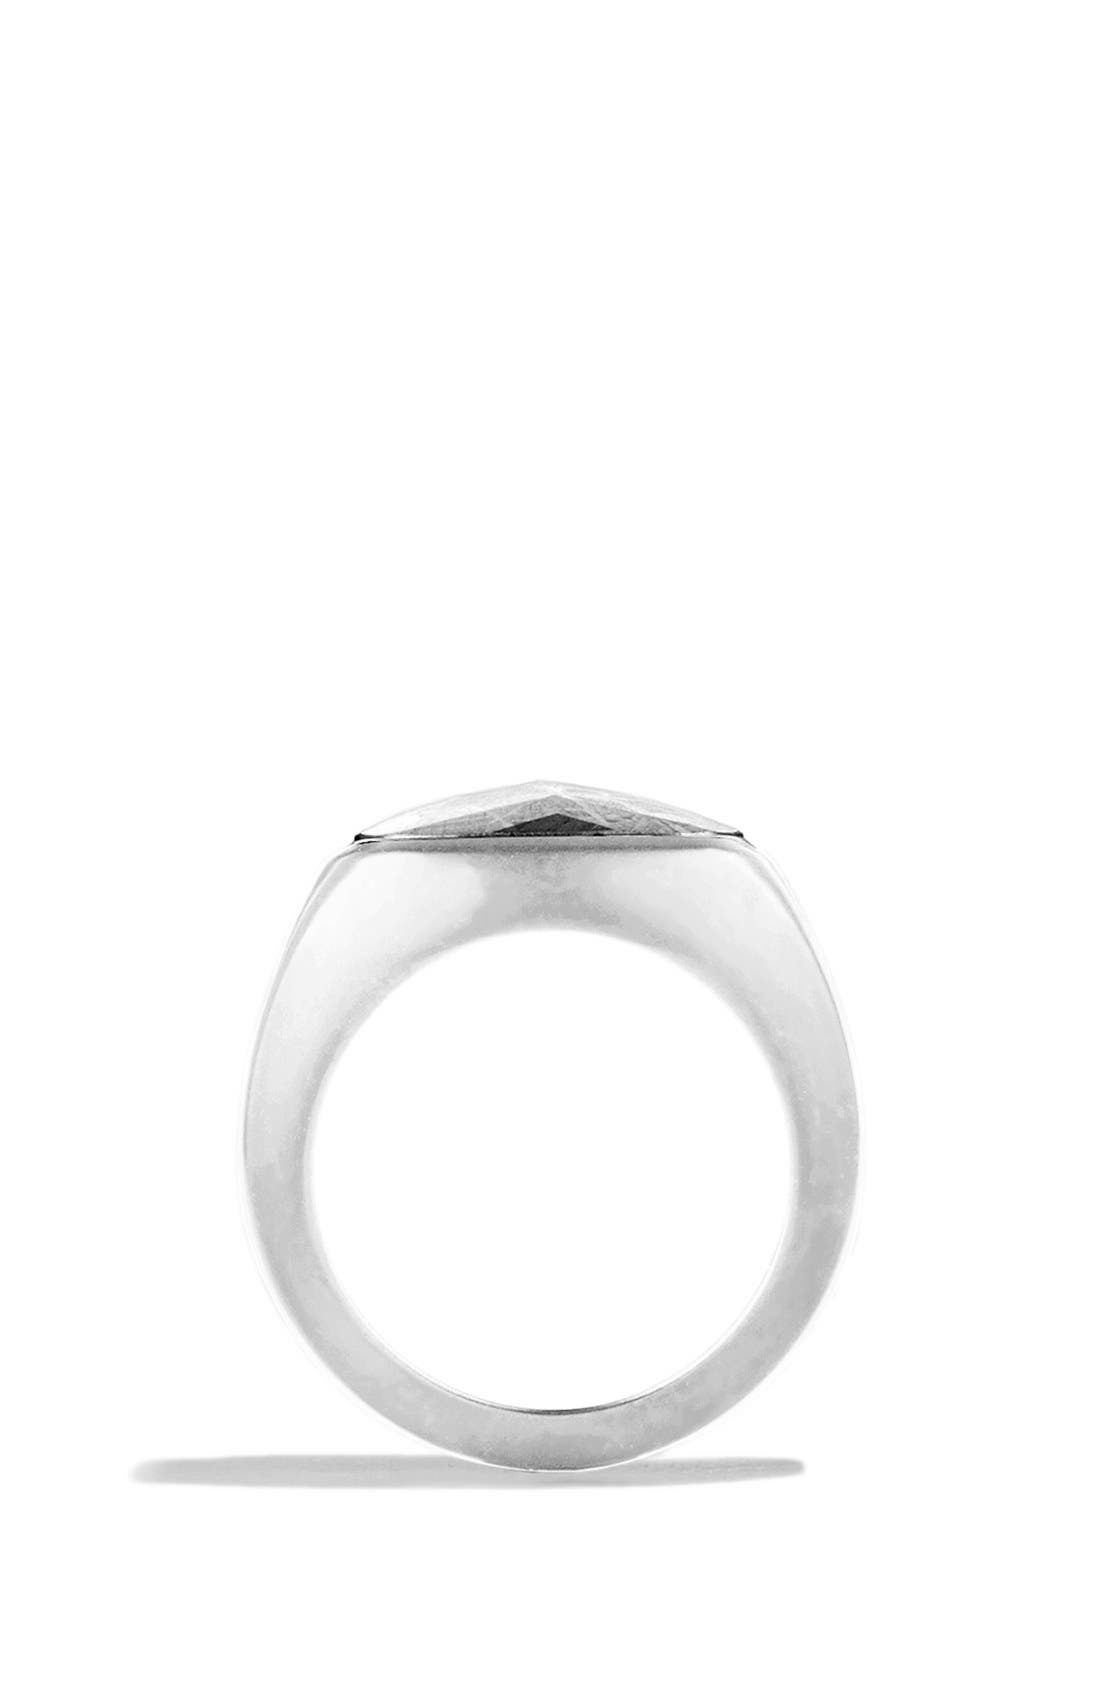 Signet Ring with Meteorite,                             Alternate thumbnail 2, color,                             030